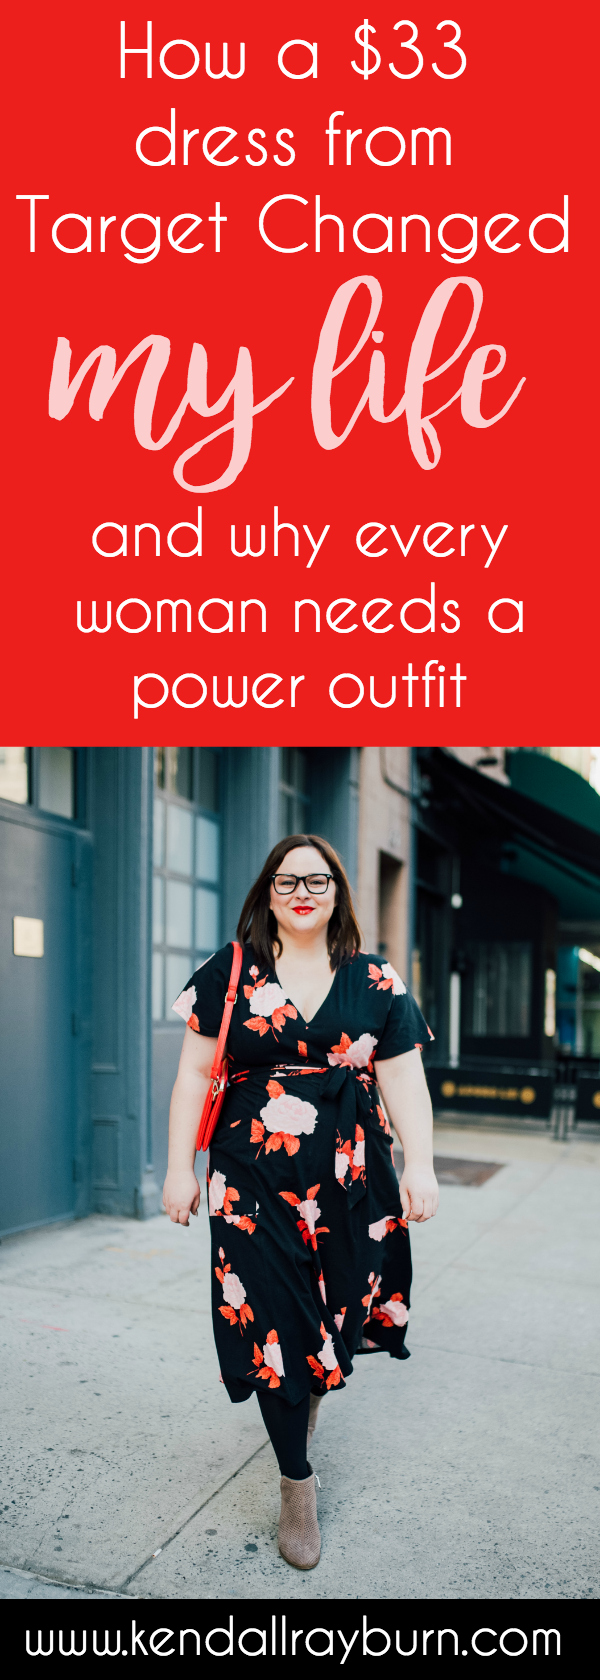 How a $33 Dress from Target Changed My Life and Why Every Woman Needs a Power Outfit